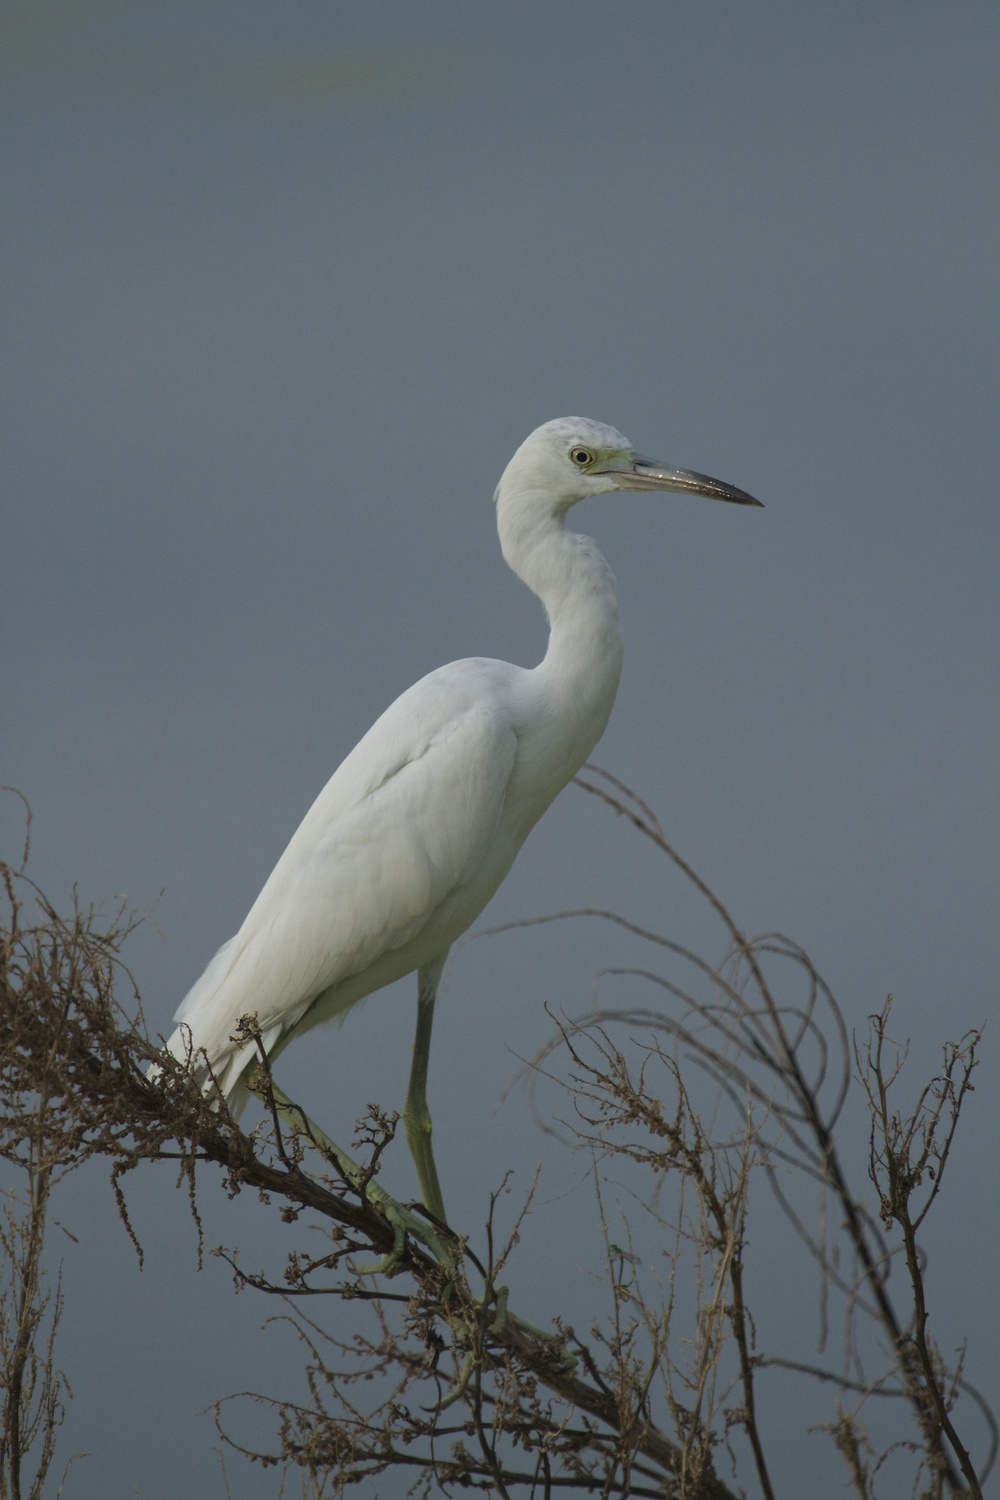 Juvenile Little Blue Heron, white plumes and a grey sky